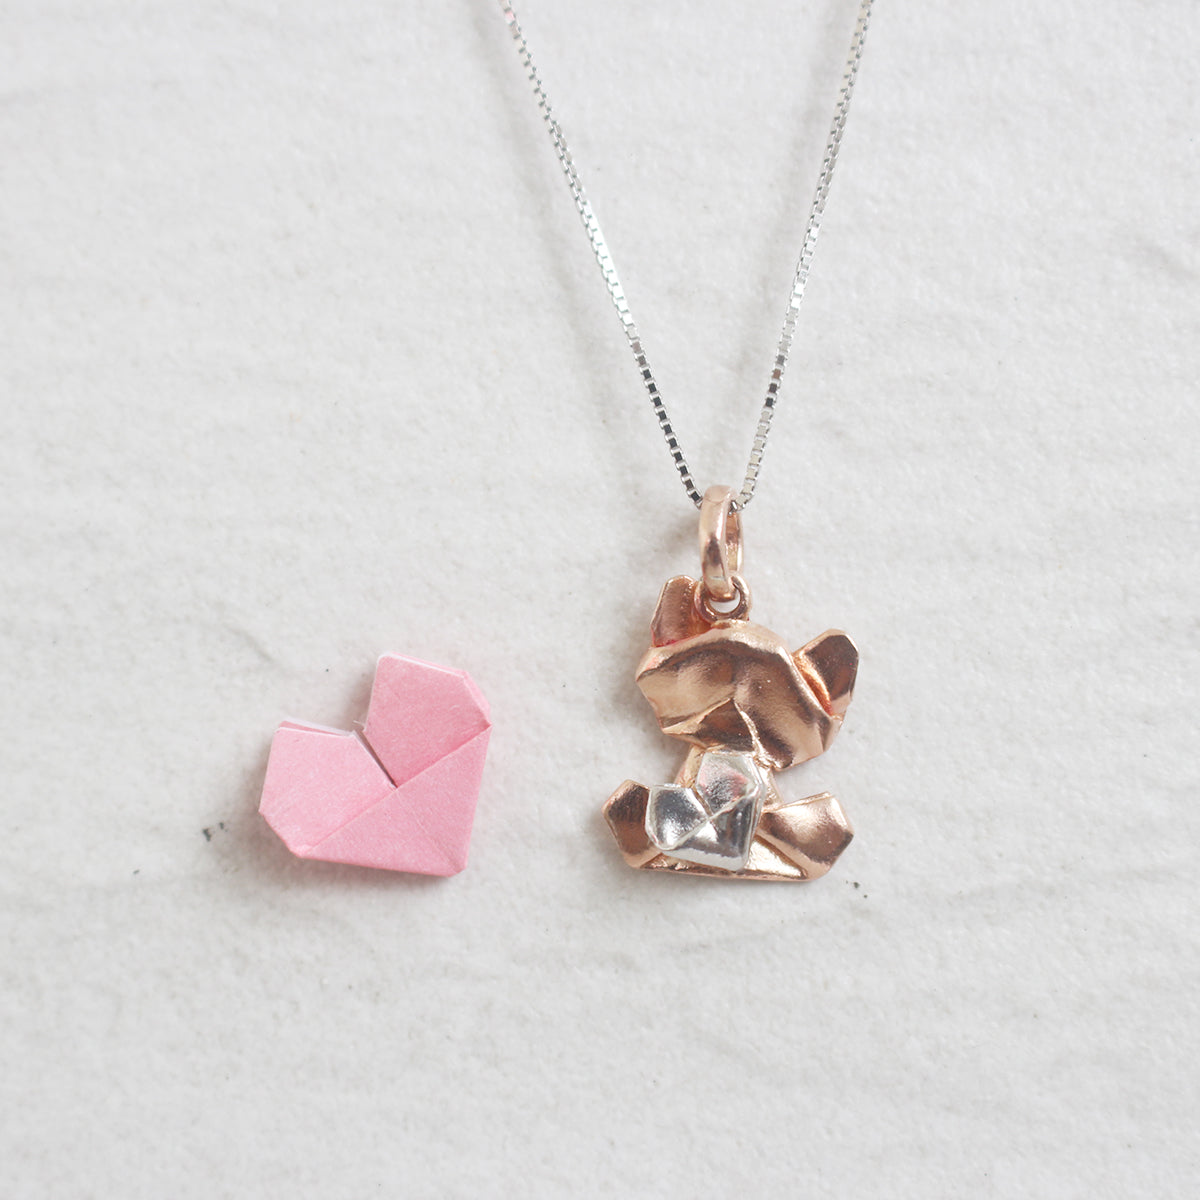 Bear My Love - 925 Silver Origami Bear My Love Necklace (Small/Rose Gold/Gloss)